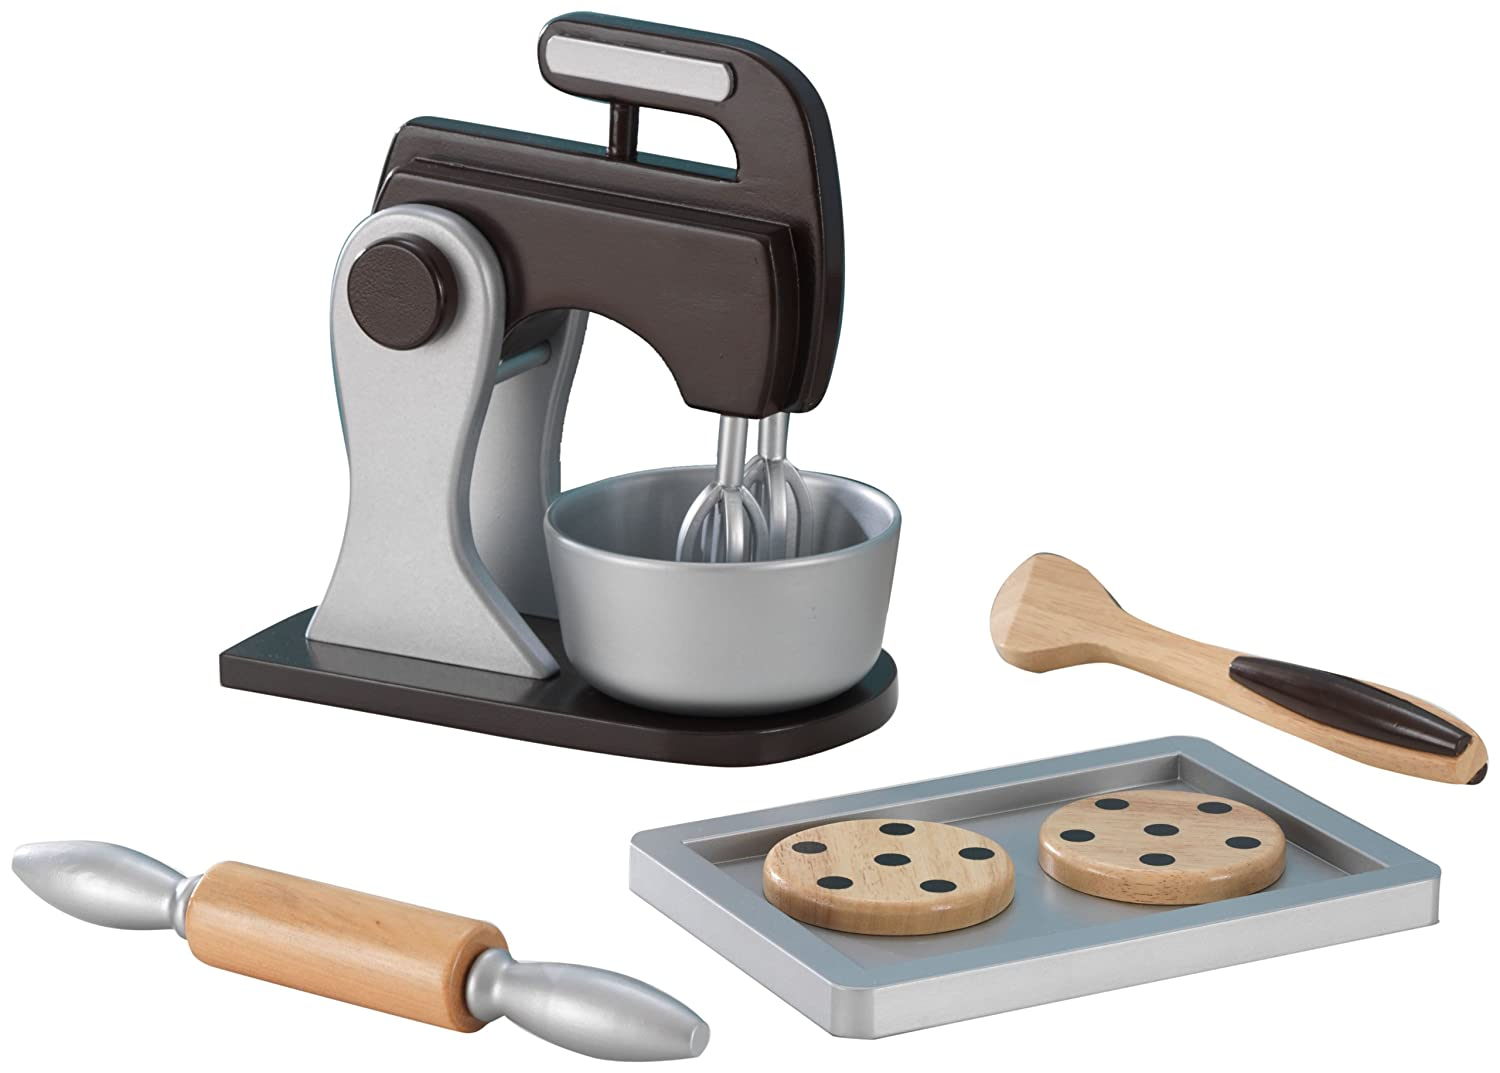 KidKraft Espresso Baking Set: Kidkraft: Amazon.co.uk: Toys & Games